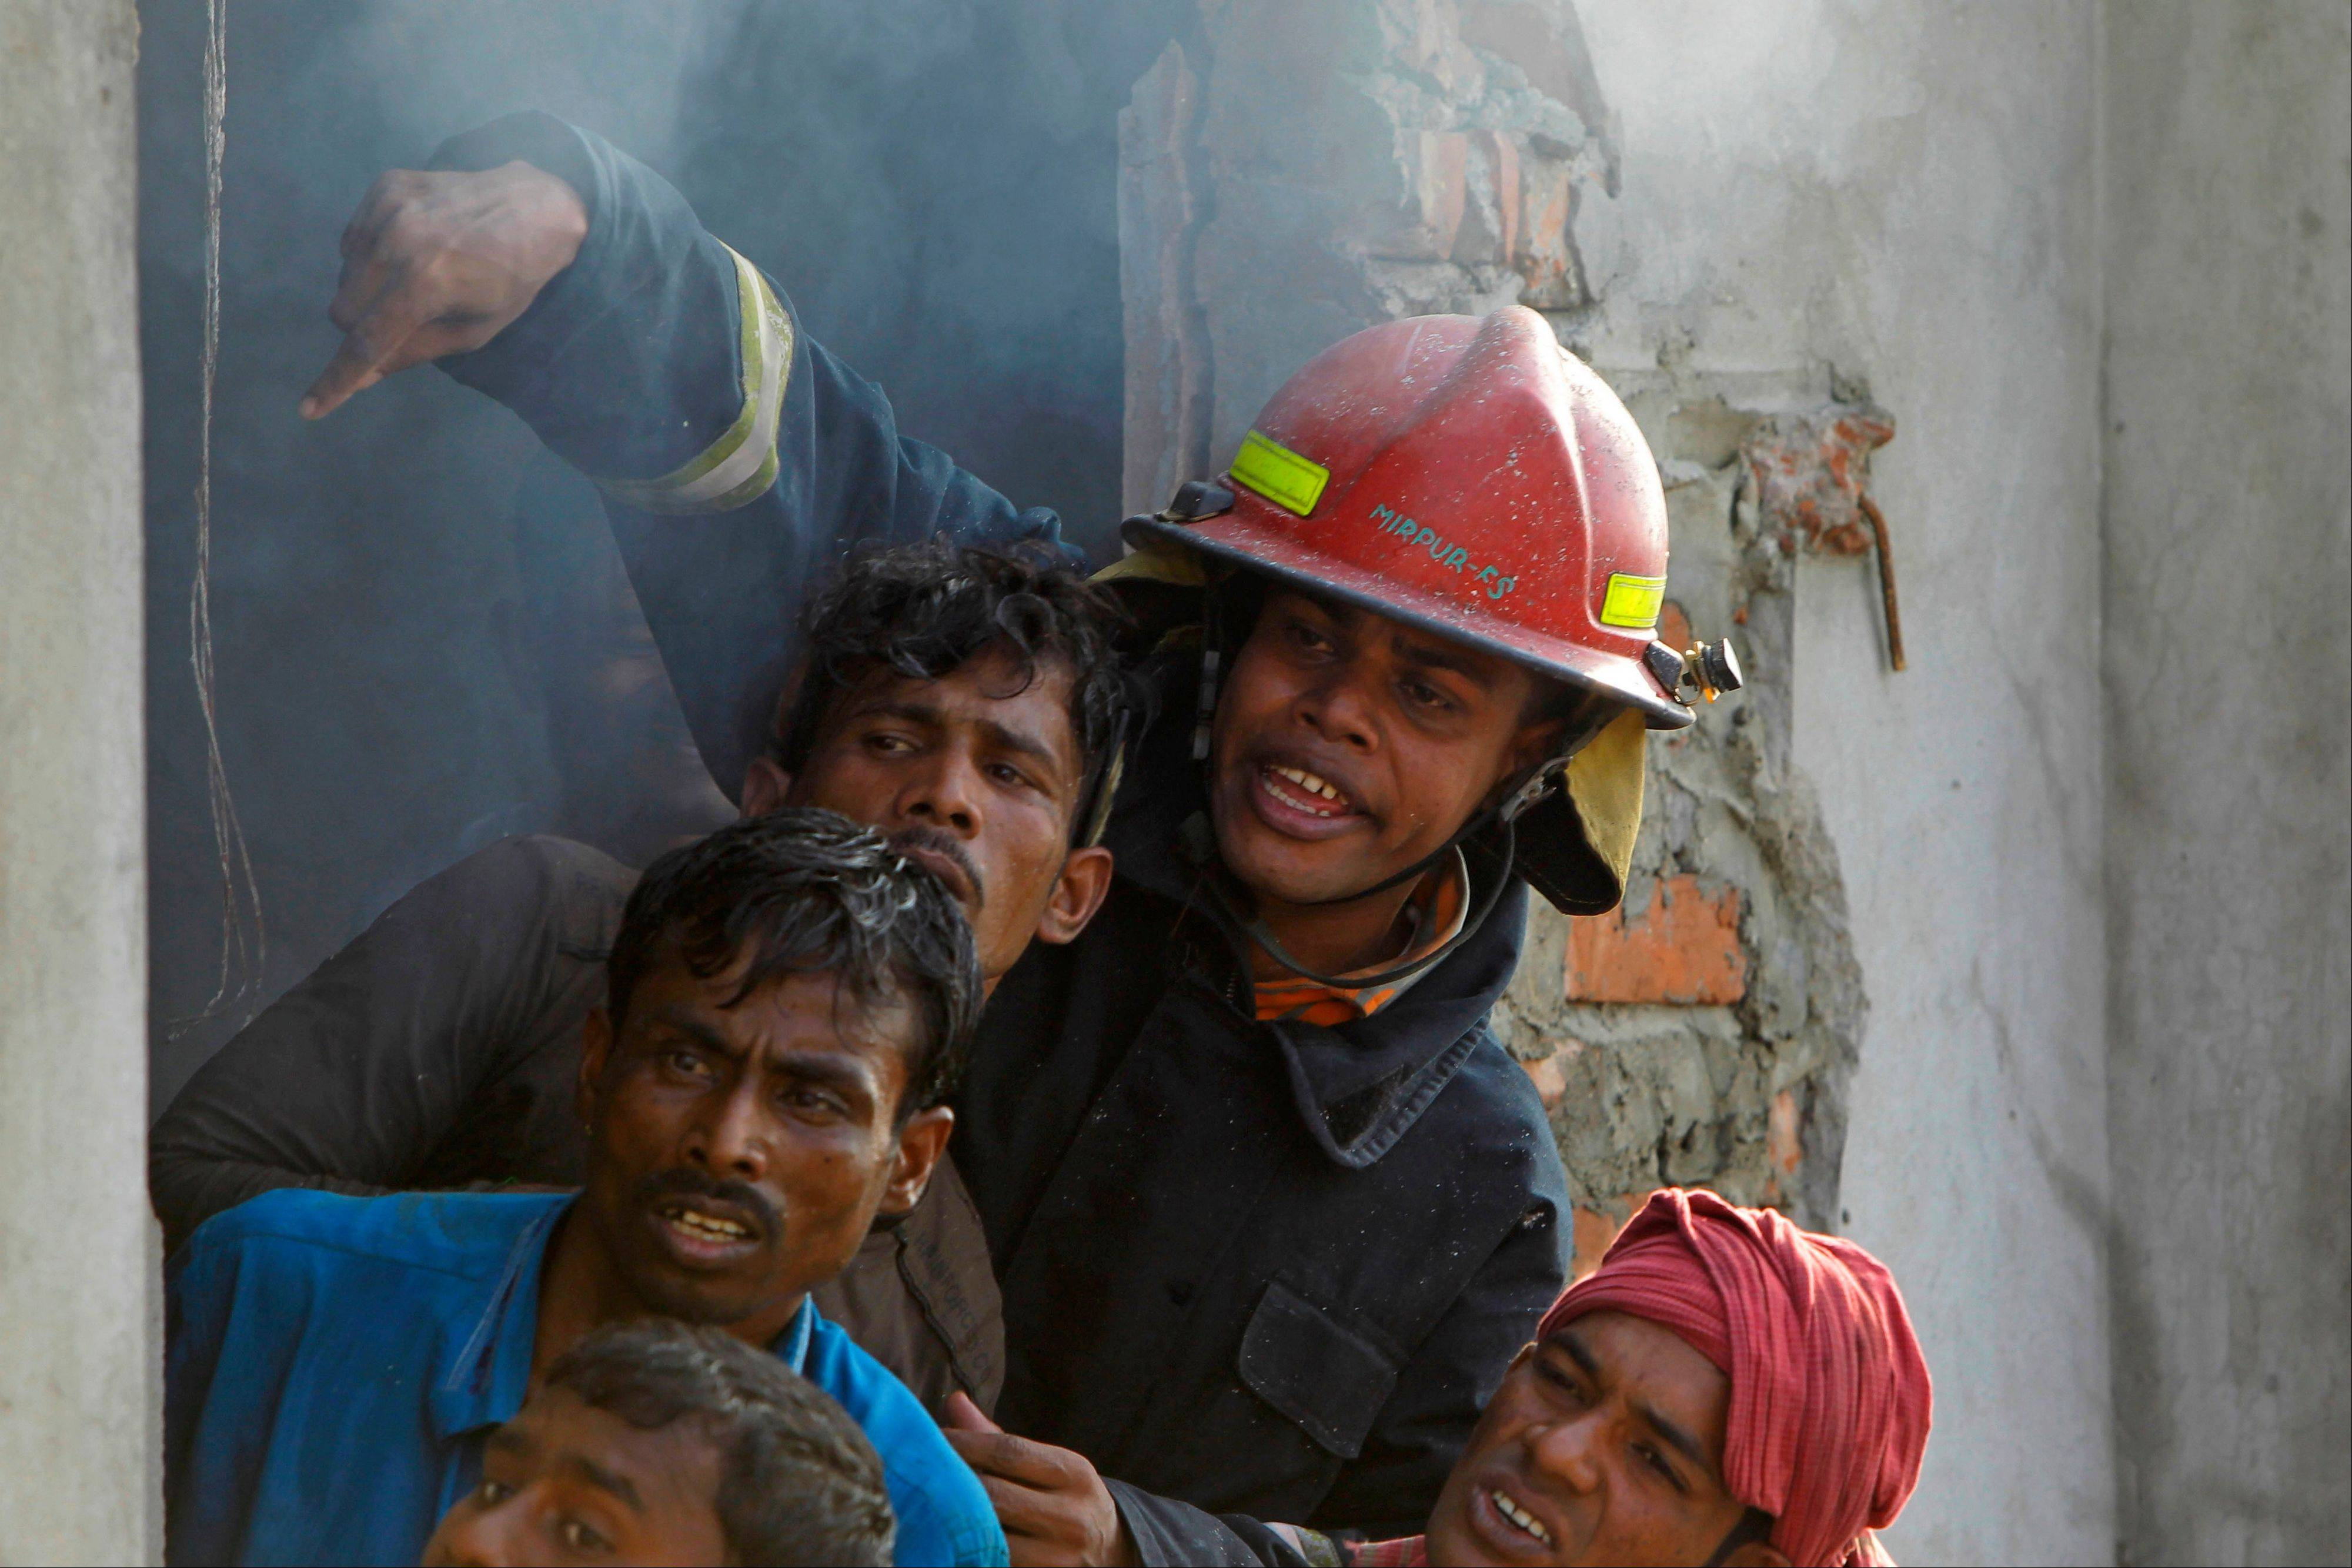 Bangladeshi firefighters and volunteers work to douse a fire at a two-storied garment factory in Dhaka, Bangladesh, Saturday, Jan.26, 2013. The fire killed at least six female workers and injured another five, police and fire officials said. The latest fire occurred more than two months after a deadly fire killed 112 workers in another factory near the capital city, raising questions about the safety measures in Bangladesh garment industry.